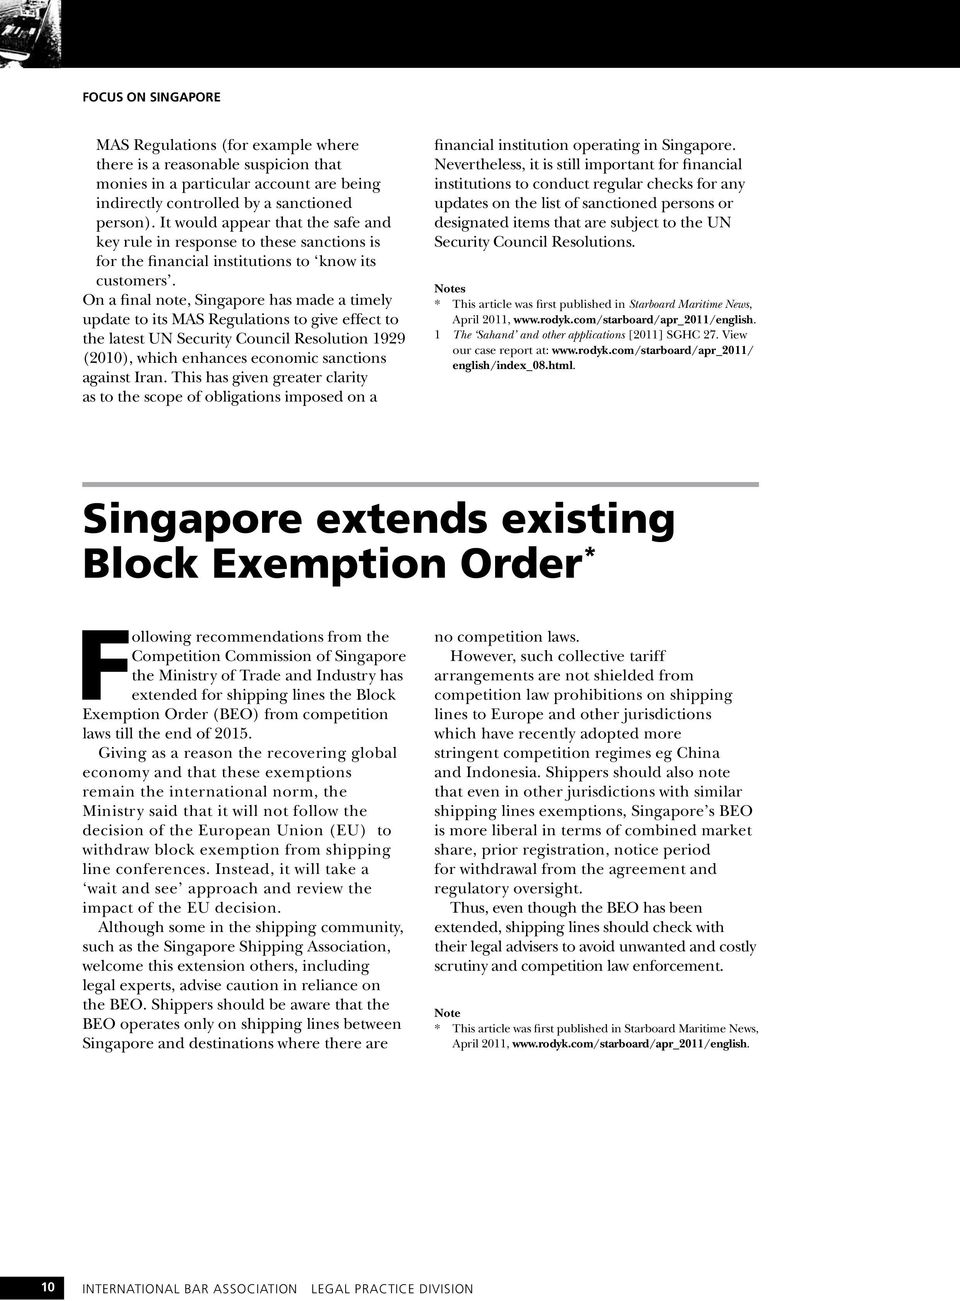 On a final note, Singapore has made a timely update to its MAS Regulations to give effect to the latest UN Security Council Resolution 1929 (2010), which enhances economic sanctions against Iran.